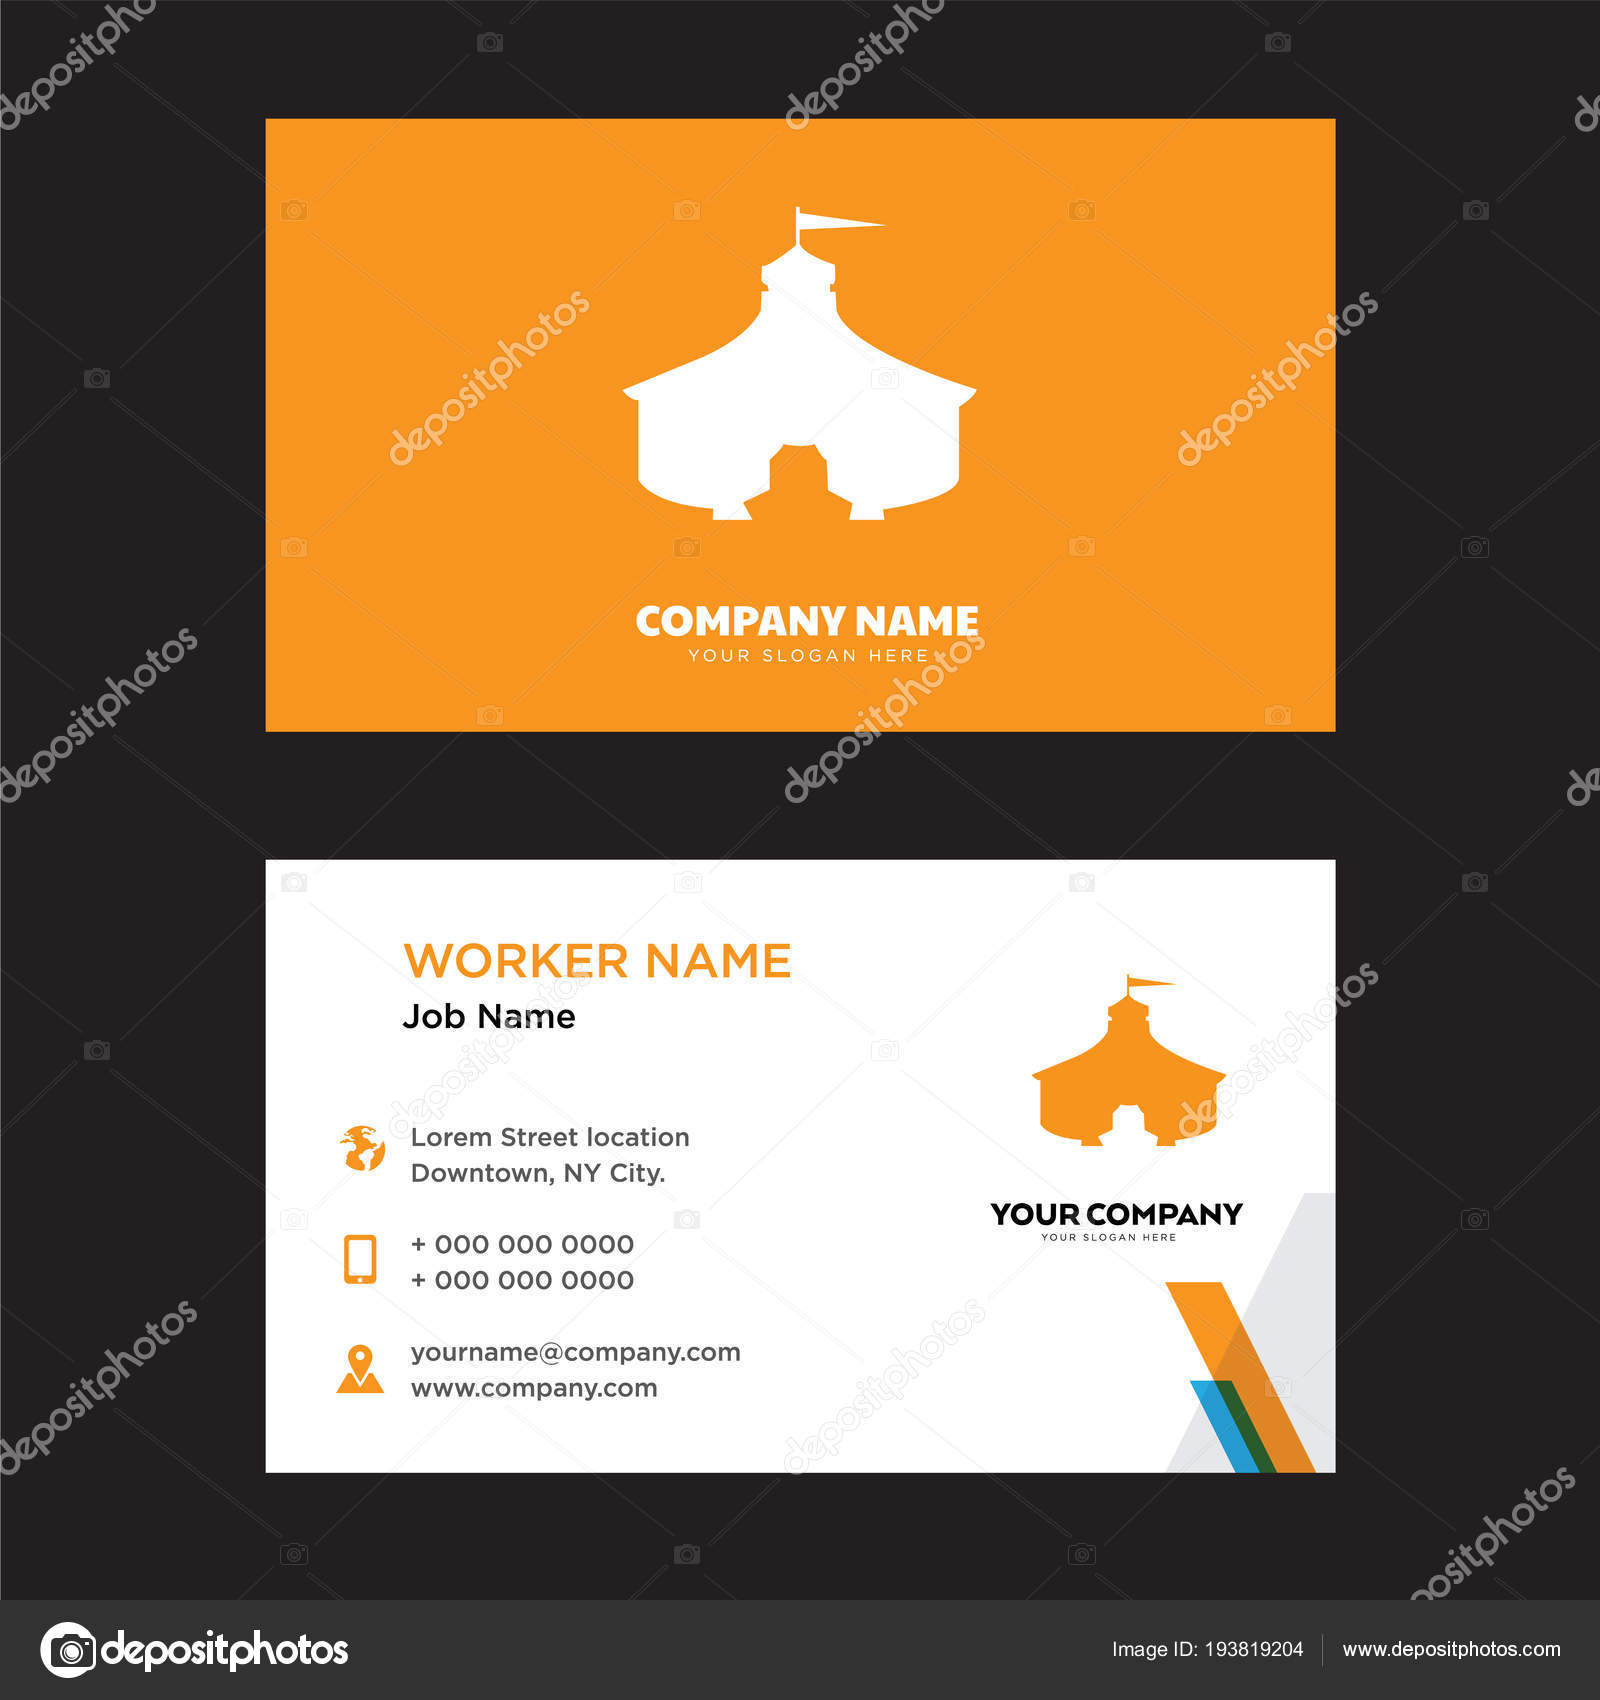 Circus Tent Business Card Design Stock Vector Vectorbest 193819204